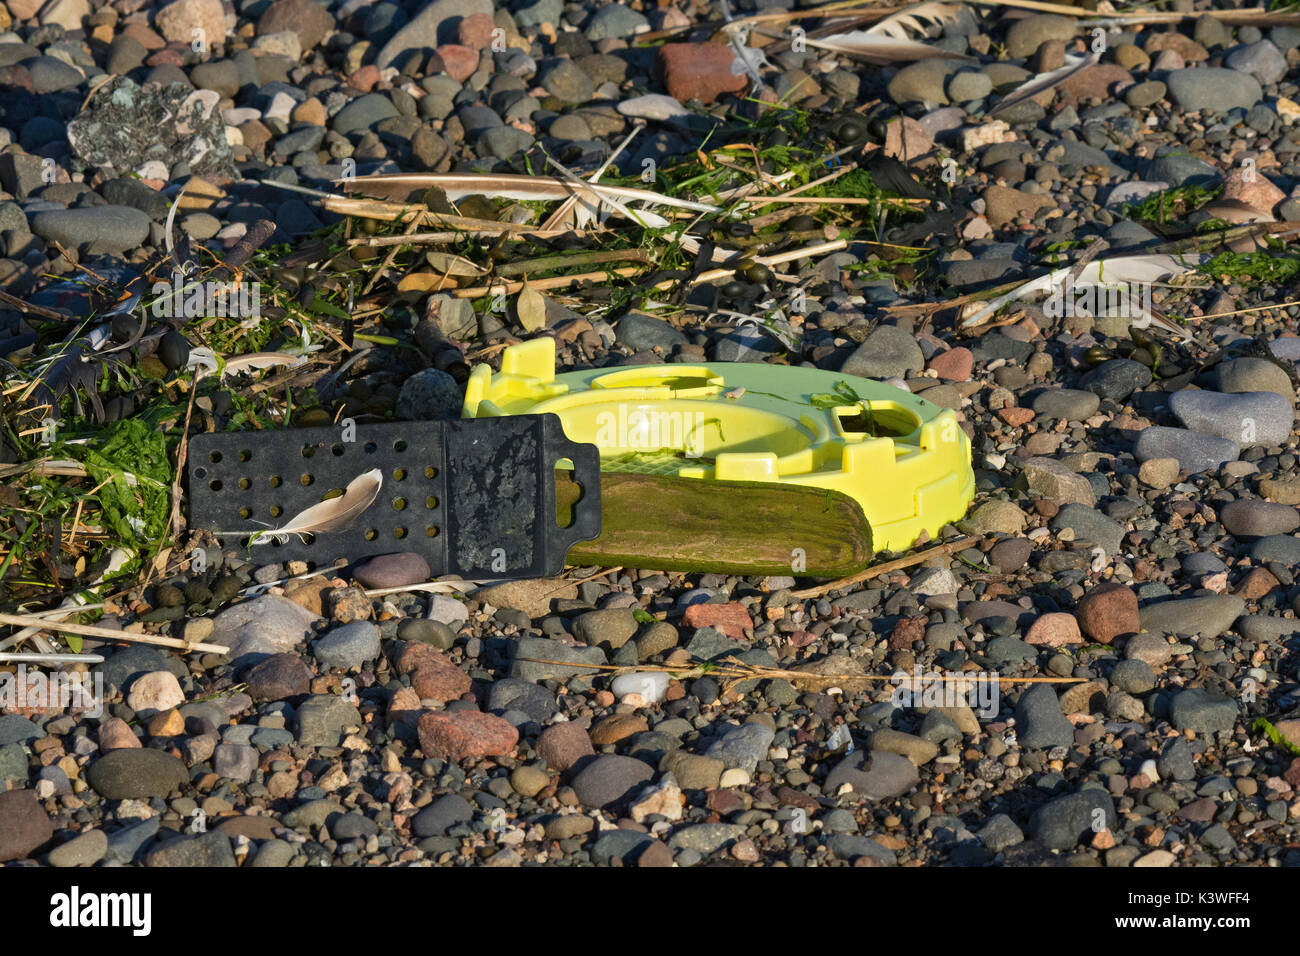 Plastic rubbish washed up on beach in Lancashire - Stock Image